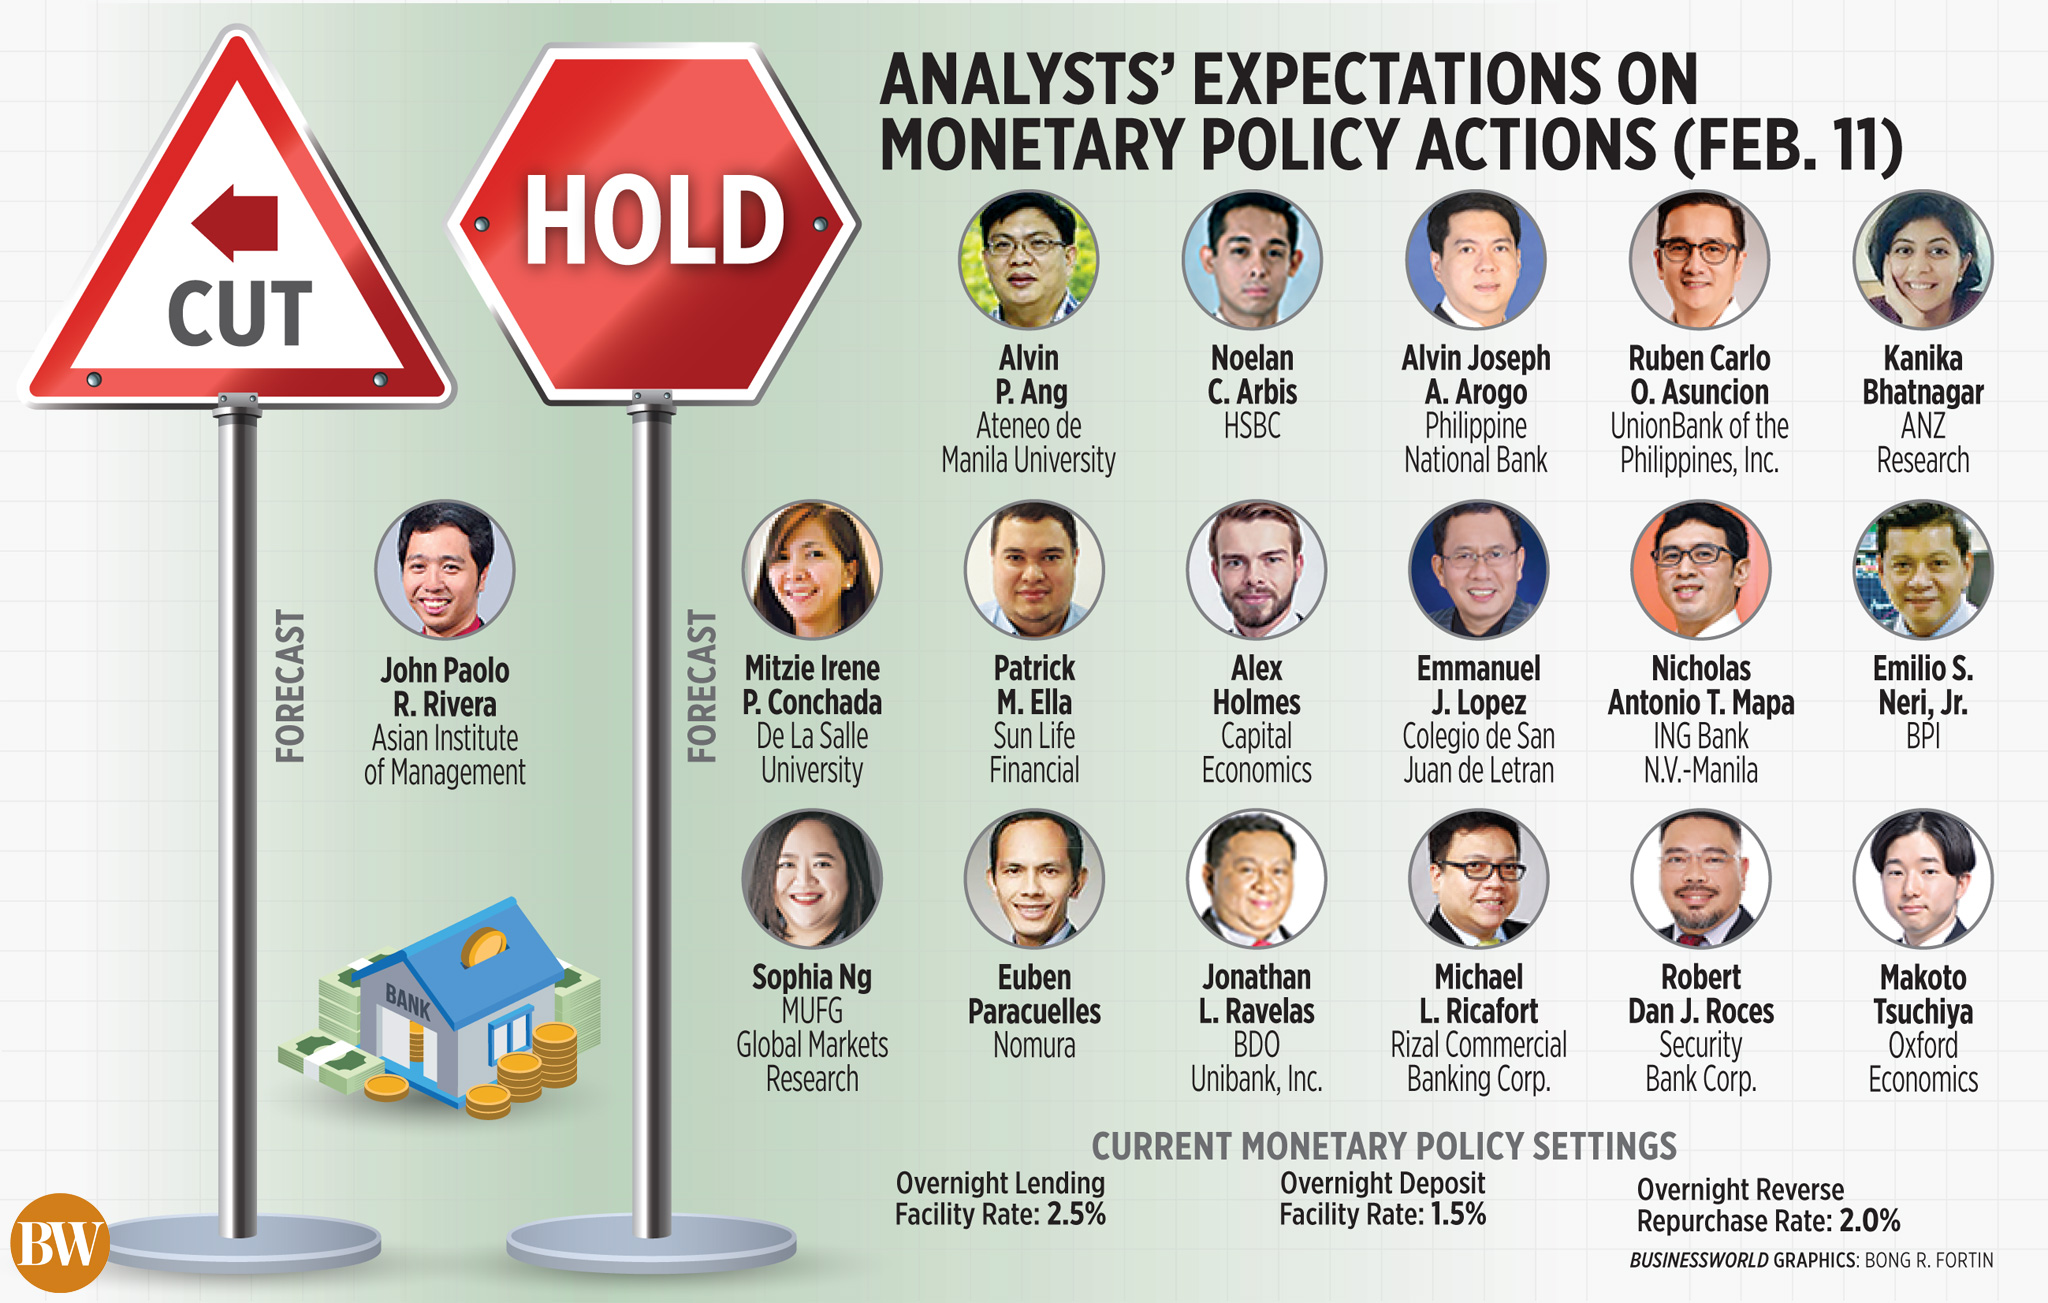 Analysts' expectations on monetary policy actions (Feb. 11)